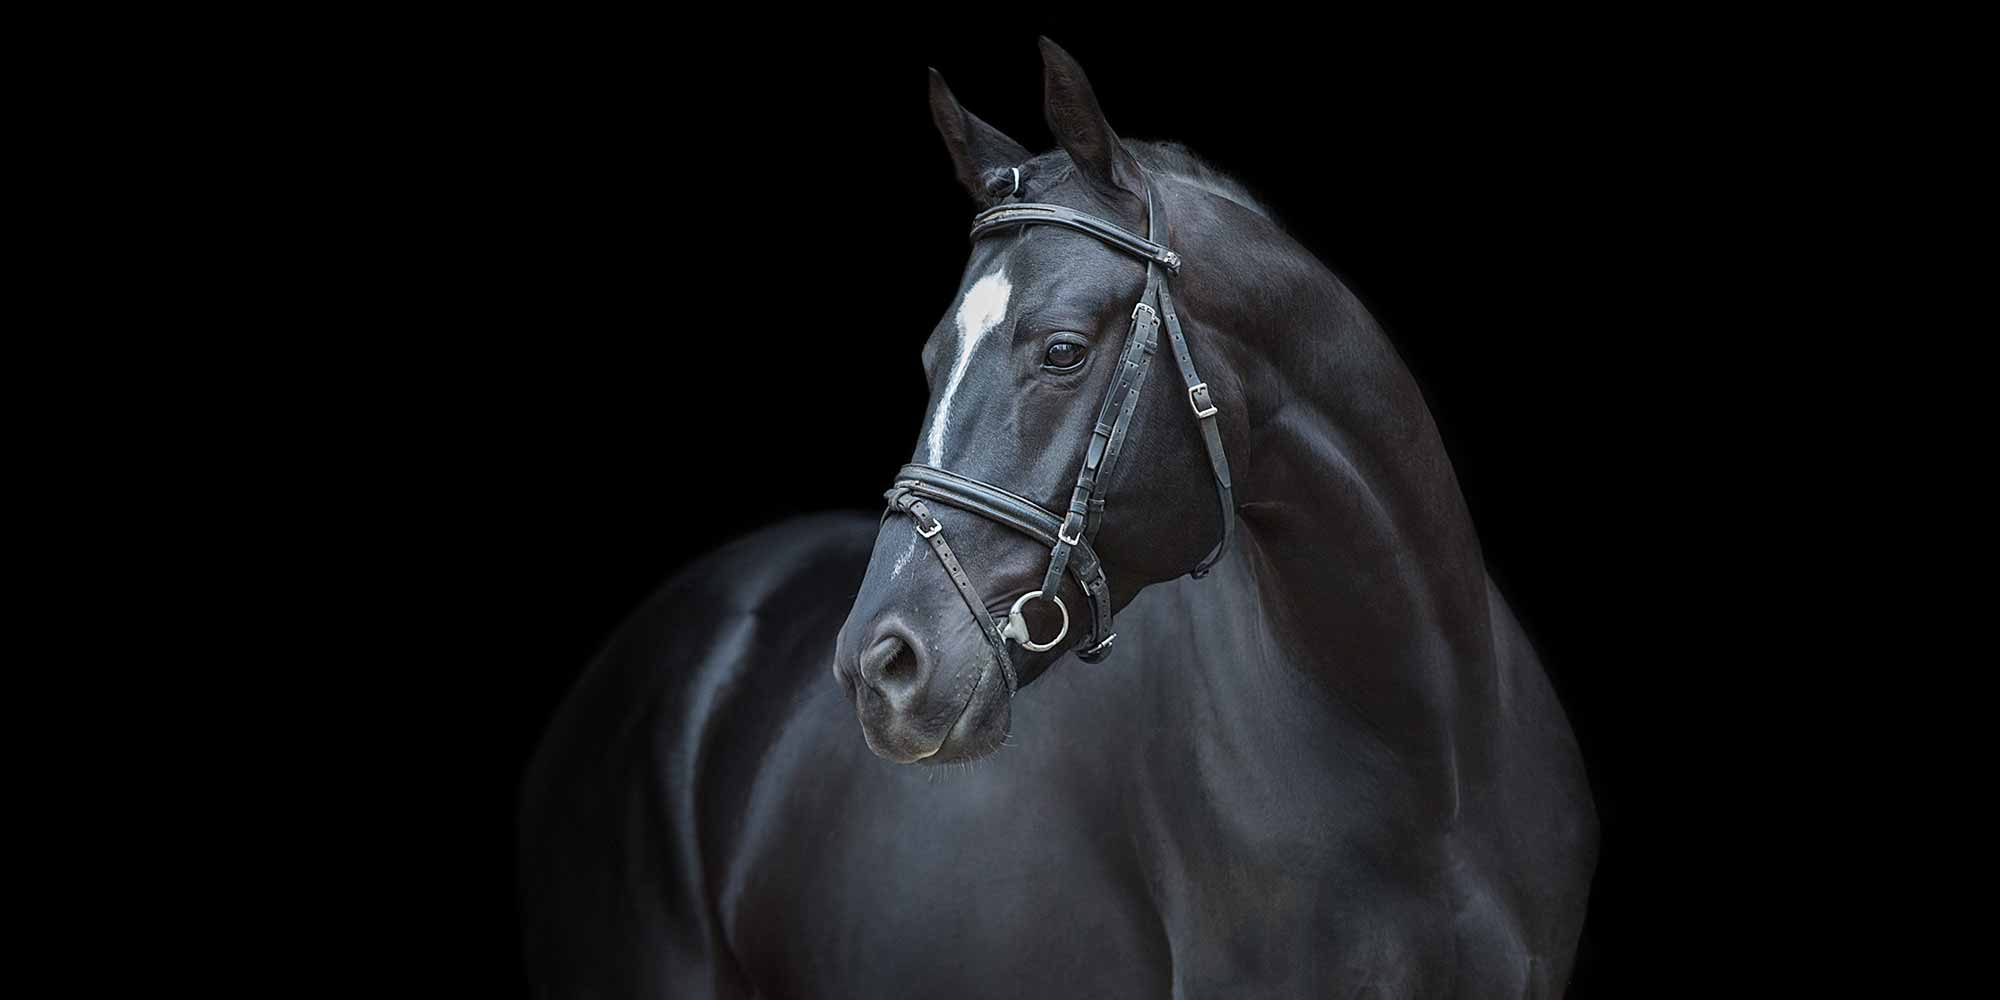 EQ Graphics | Warmblood Stallion Horse Photography Featuring a Black Background